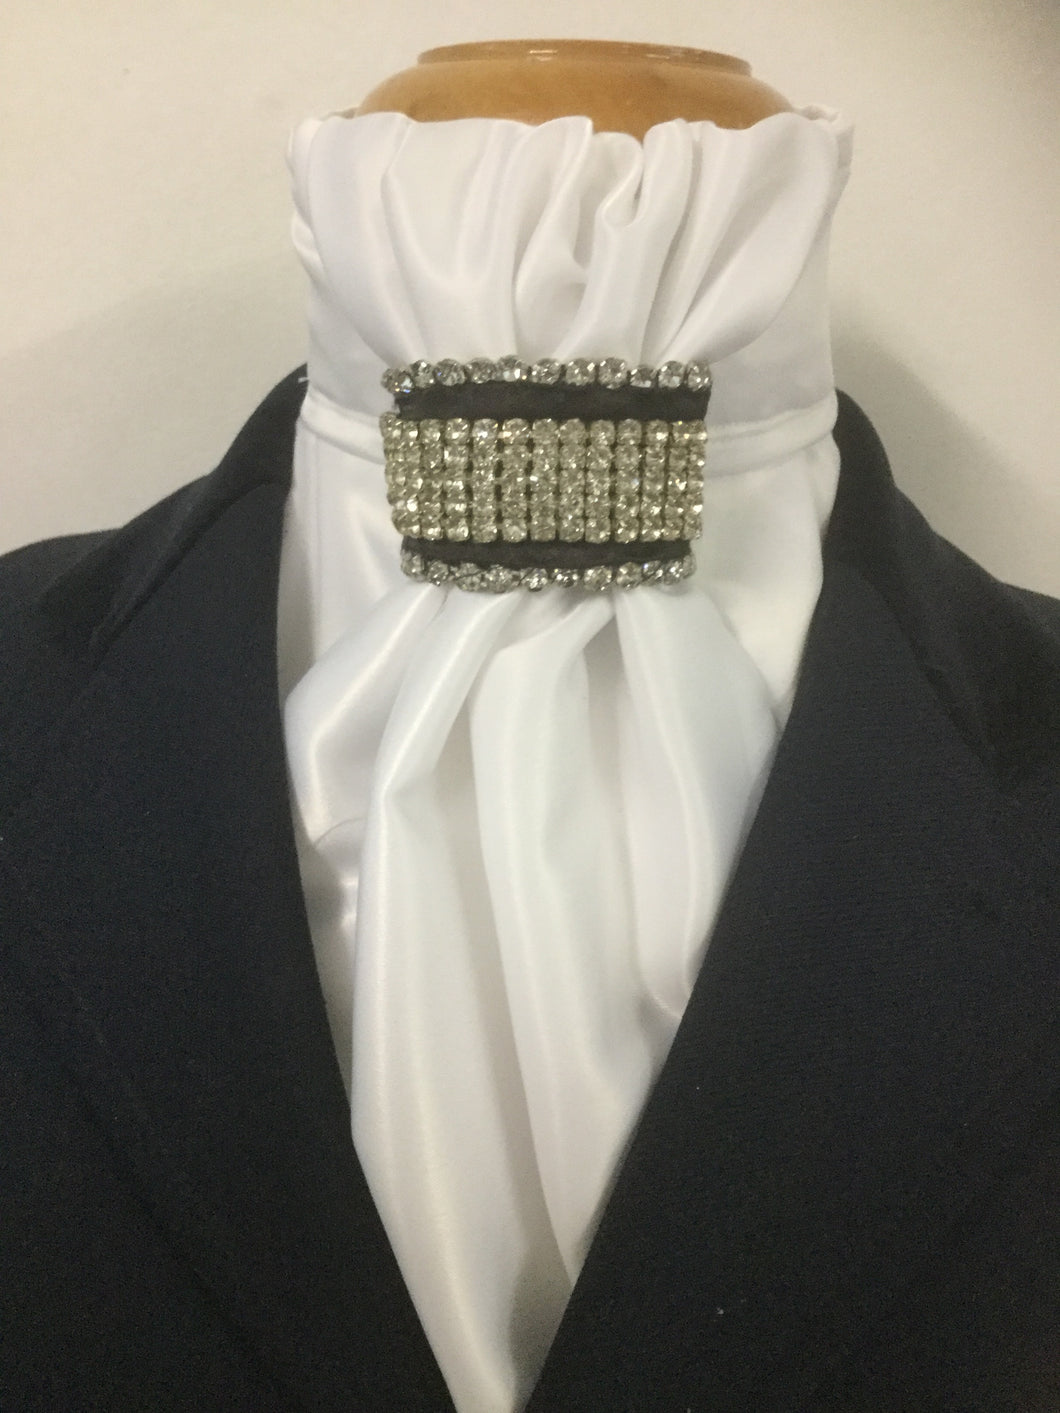 HHD White Satin Pretied Euro Stock 'Jessica' Black with Rhinestones